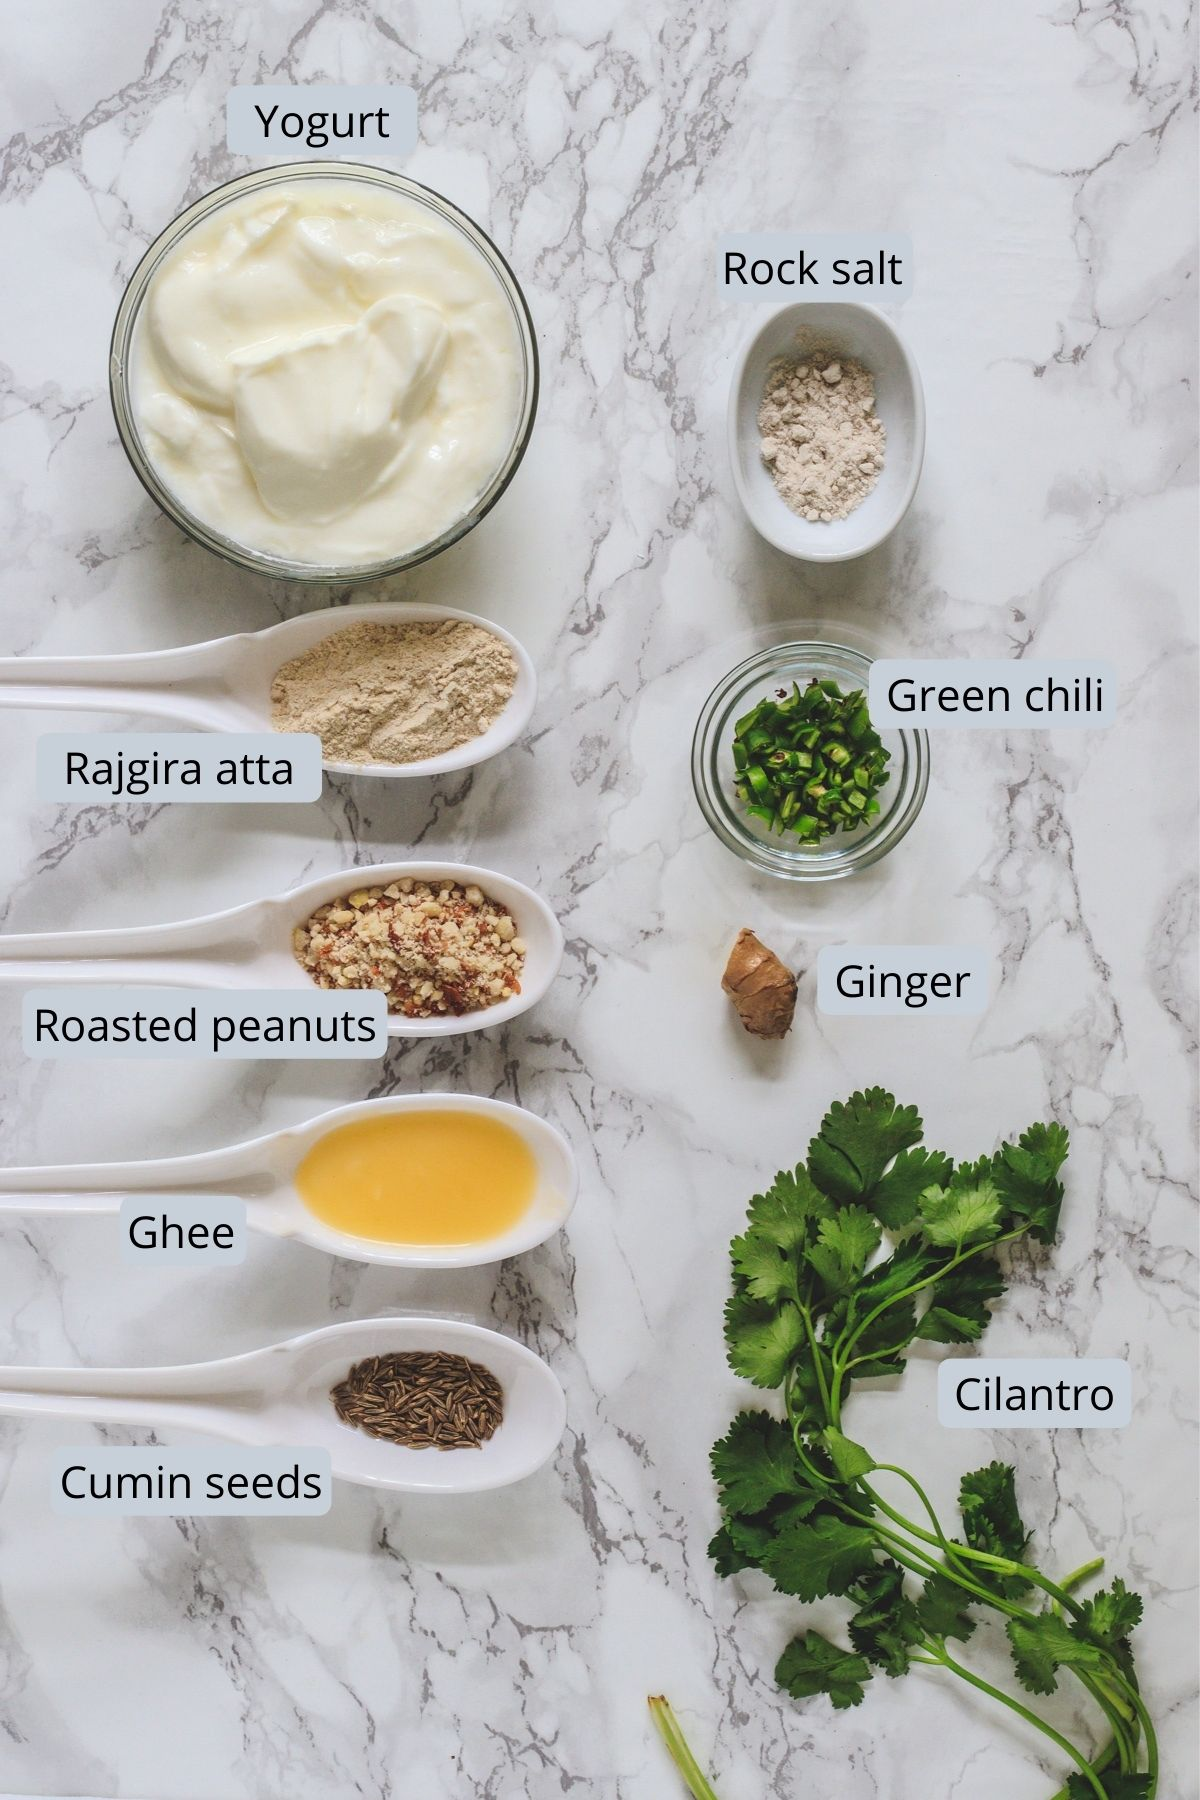 ingredients used in rajgira kadhi includes yogurt, rajgira flour, rock salt, ghee, cumin seeds, peanuts, cilantro, ginger, green chili